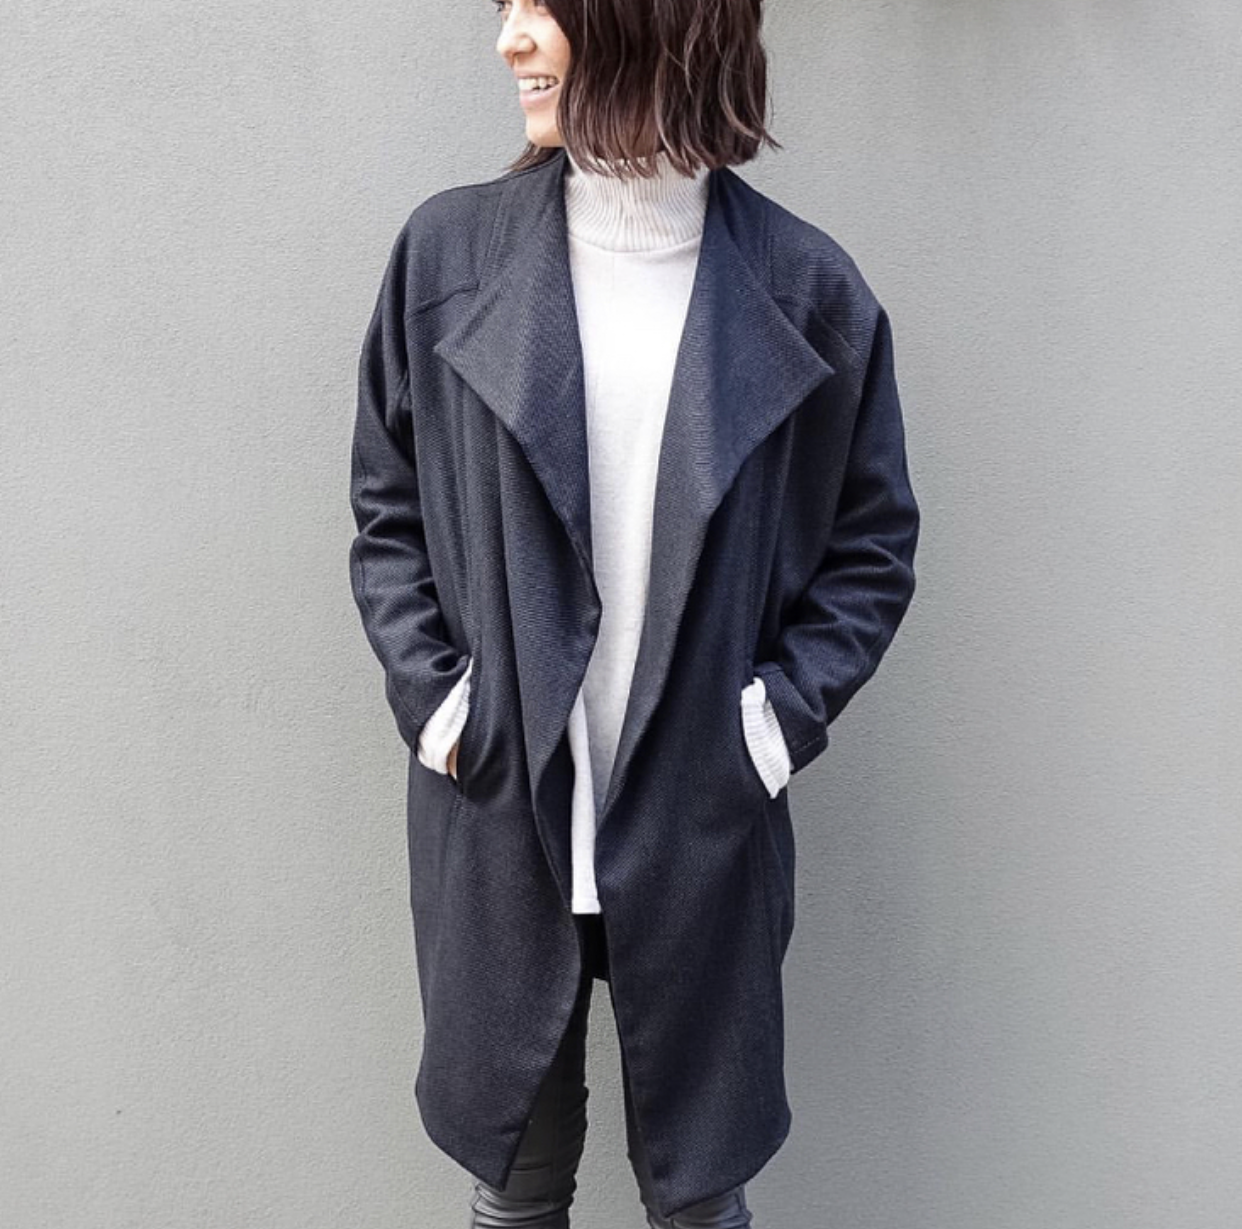 Riley Coat - PDF Jacket Sale On Now! Sale runs from 23-28 September. Coupon Code: 20JKTOFF